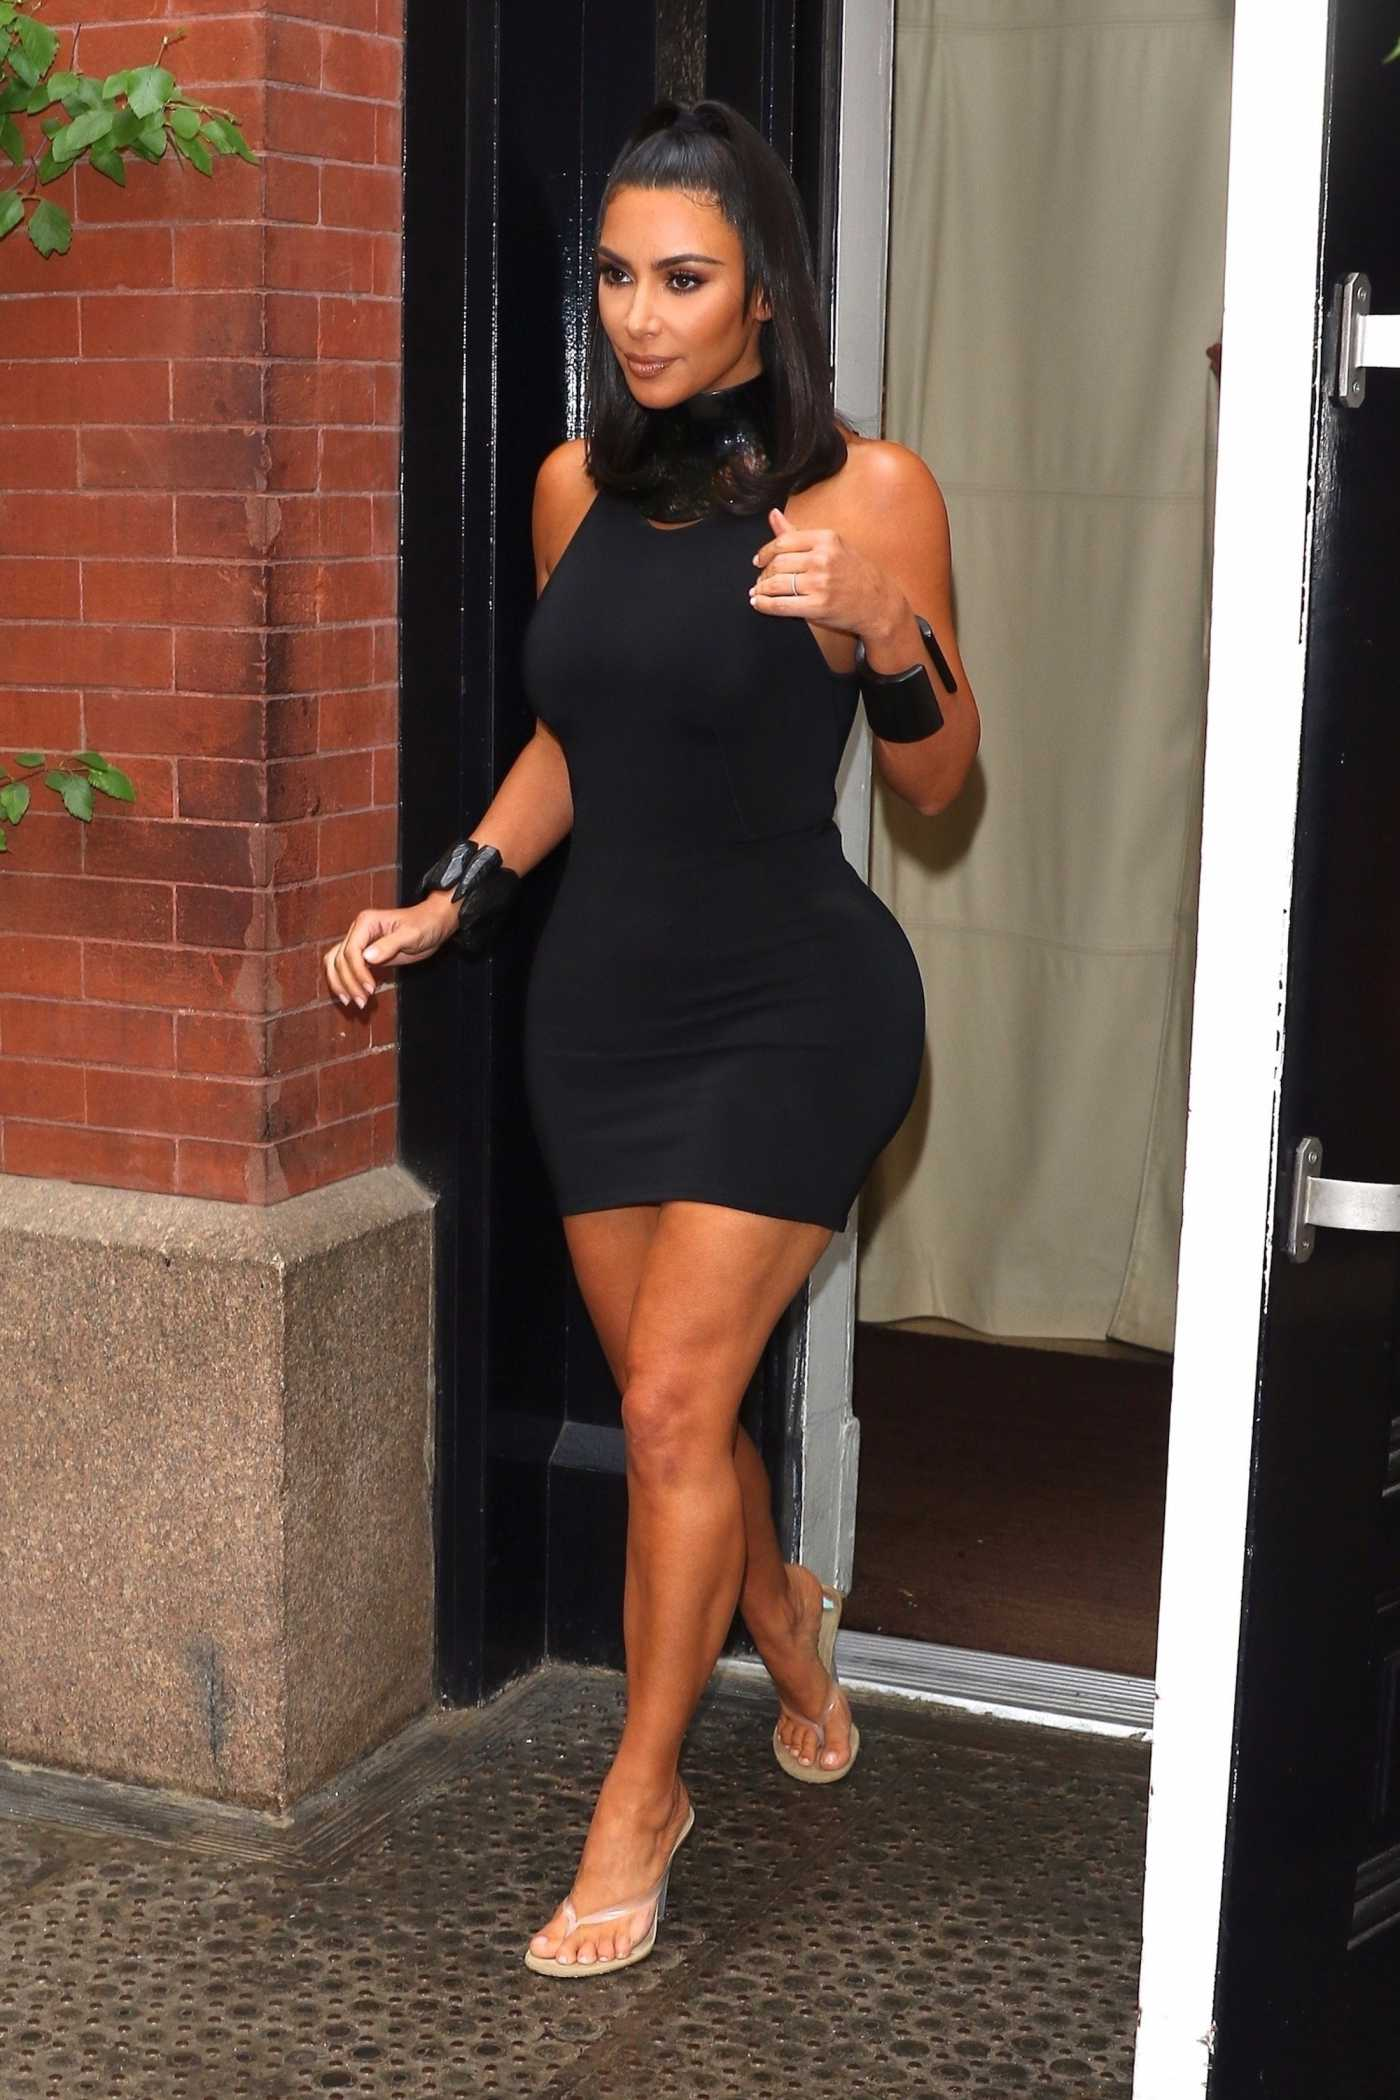 Kim Kardashian in a Black Form Fitting Dress Was Seen Out in New York City 06/25/2019